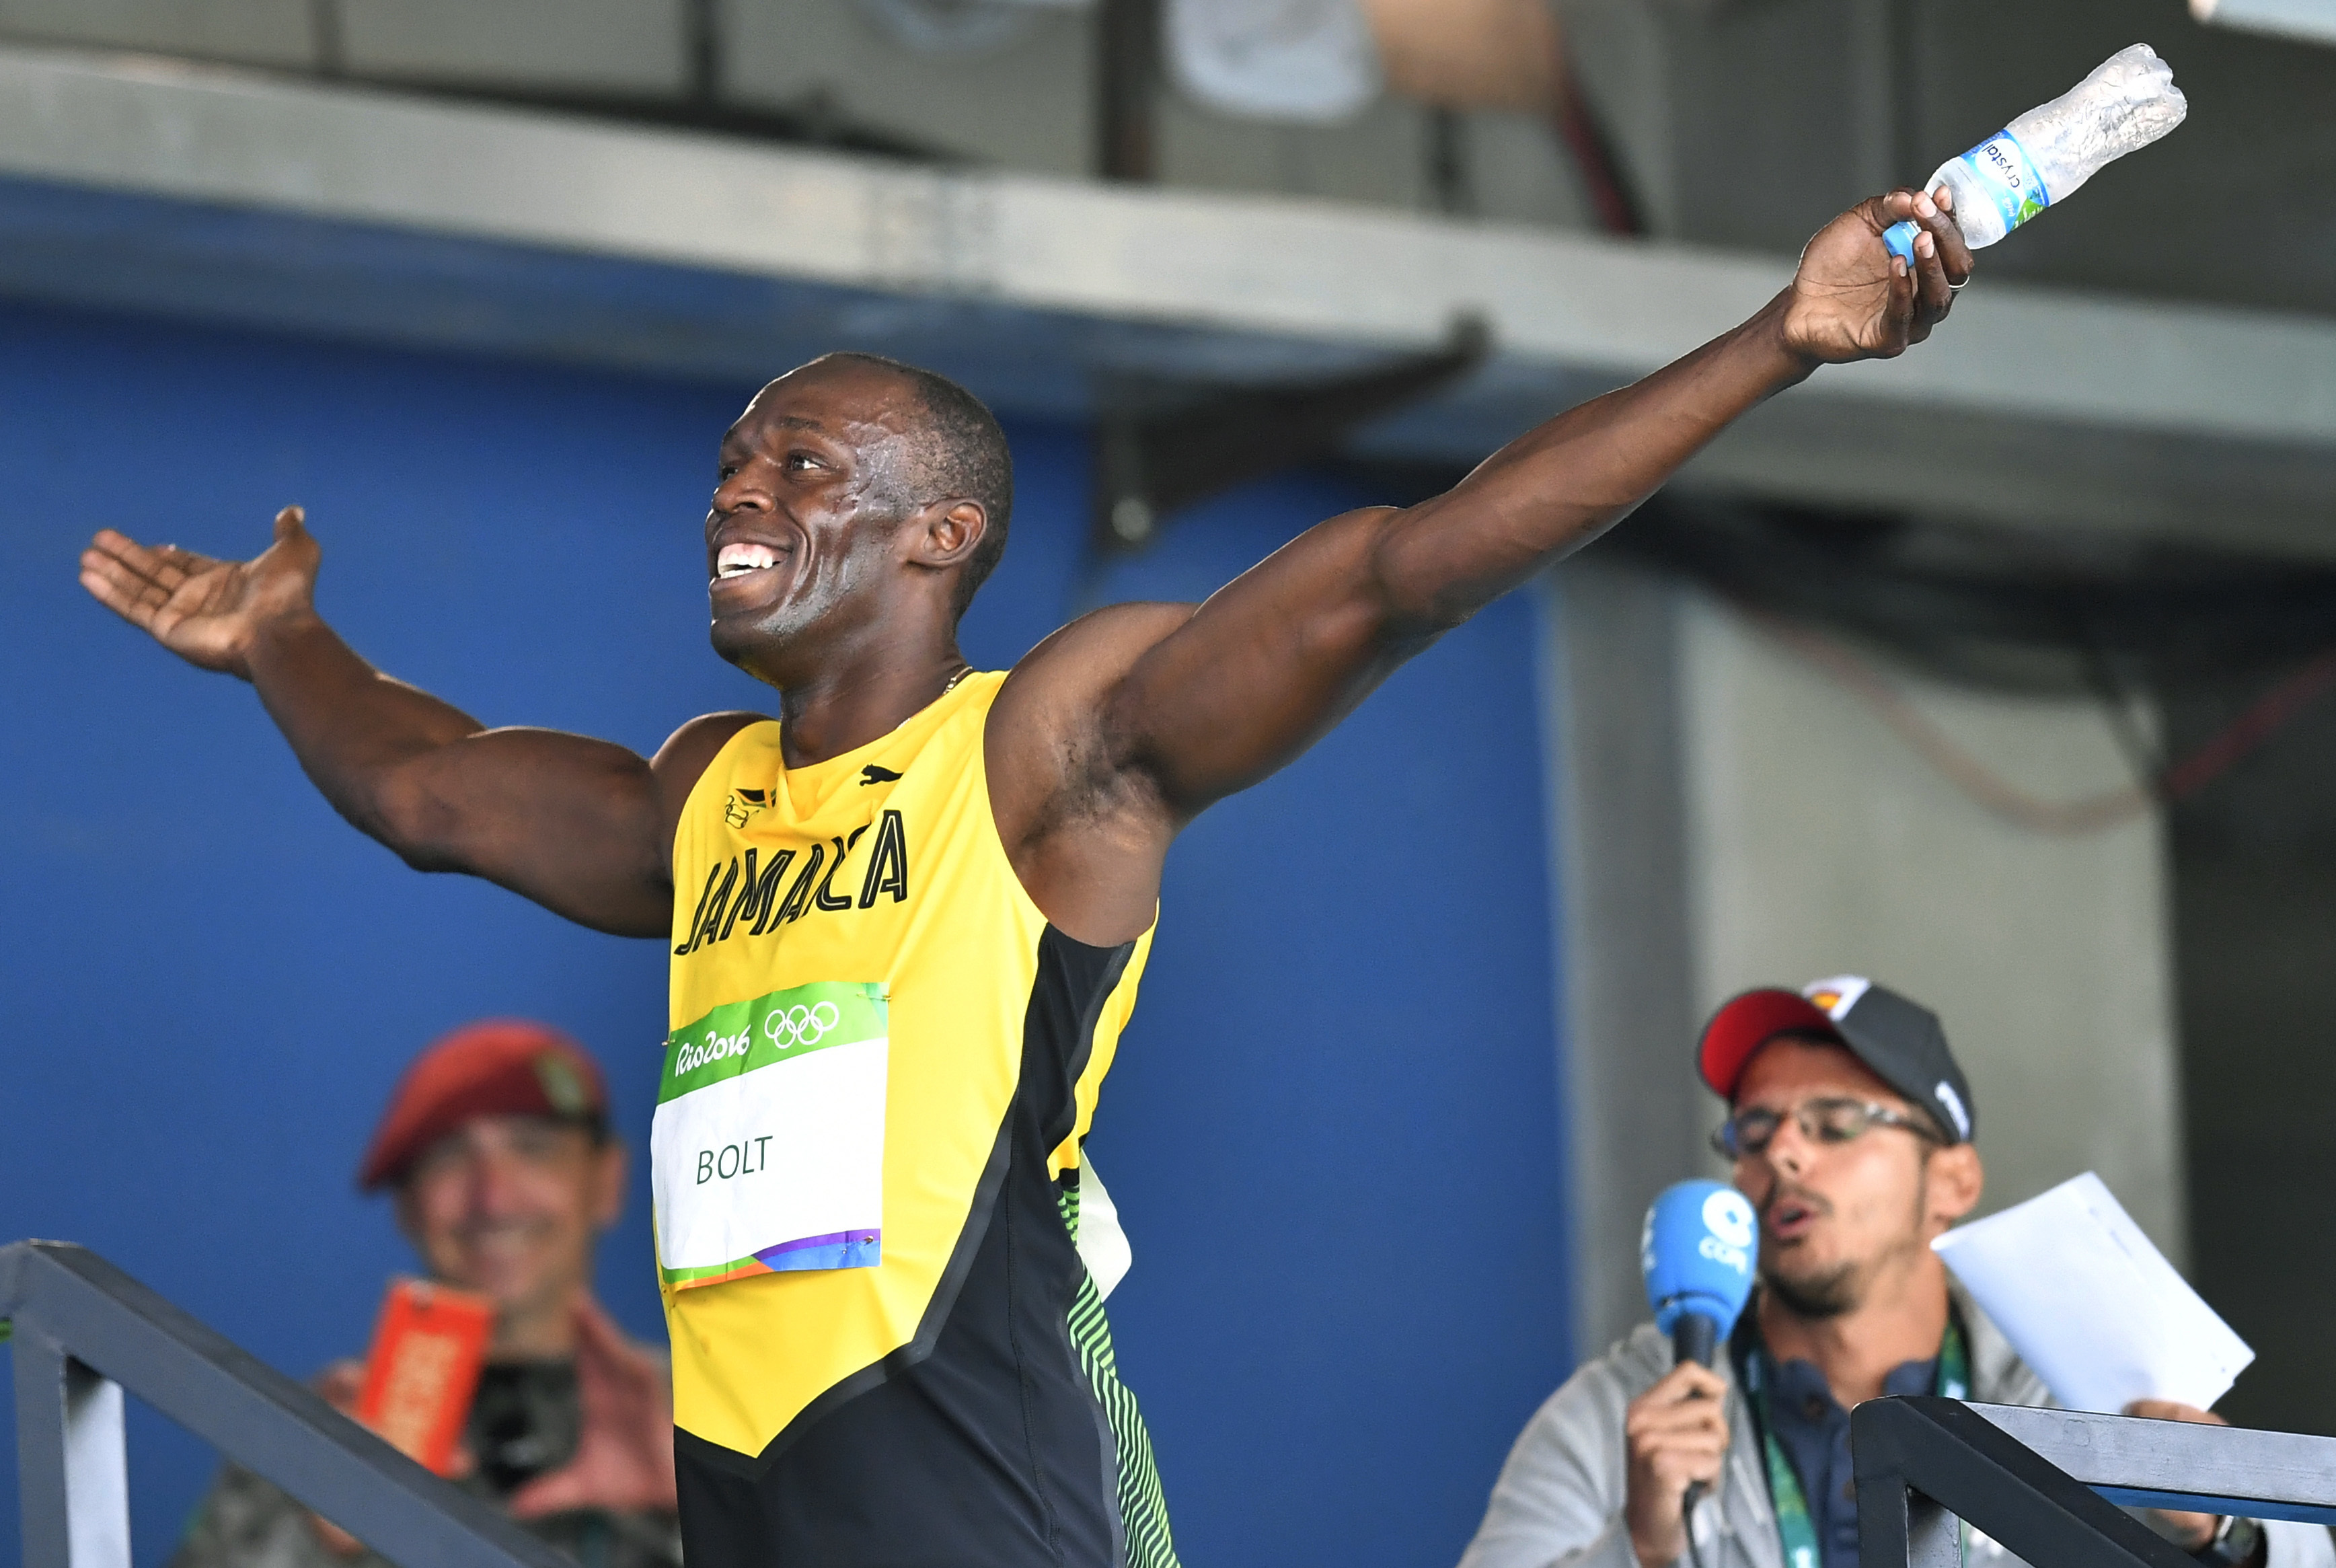 Jamaica's Usain Bolt celebrates after winning a men's 100-meter heat during the athletics competitions of the 2016 Summer Olympics at the Olympic stadium in Rio de Janeiro, Brazil, Saturday, Aug. 13, 2016. (AP Photo/Martin Meissner)